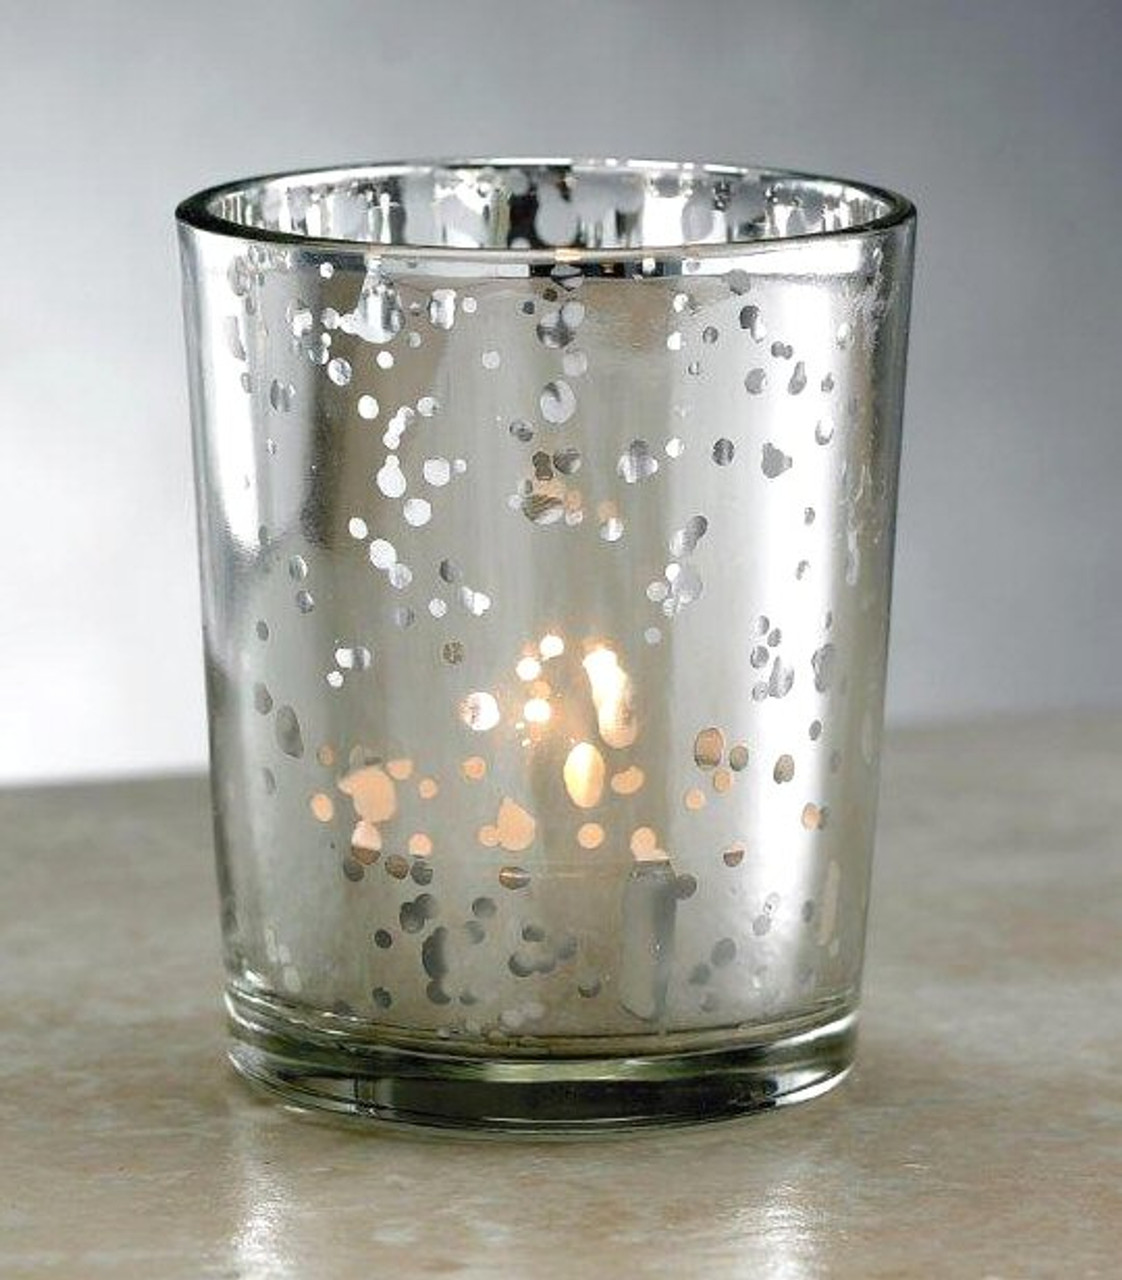 Silver Rustic Glass Votive Candle Holders Set Of 12 Candle Accessories